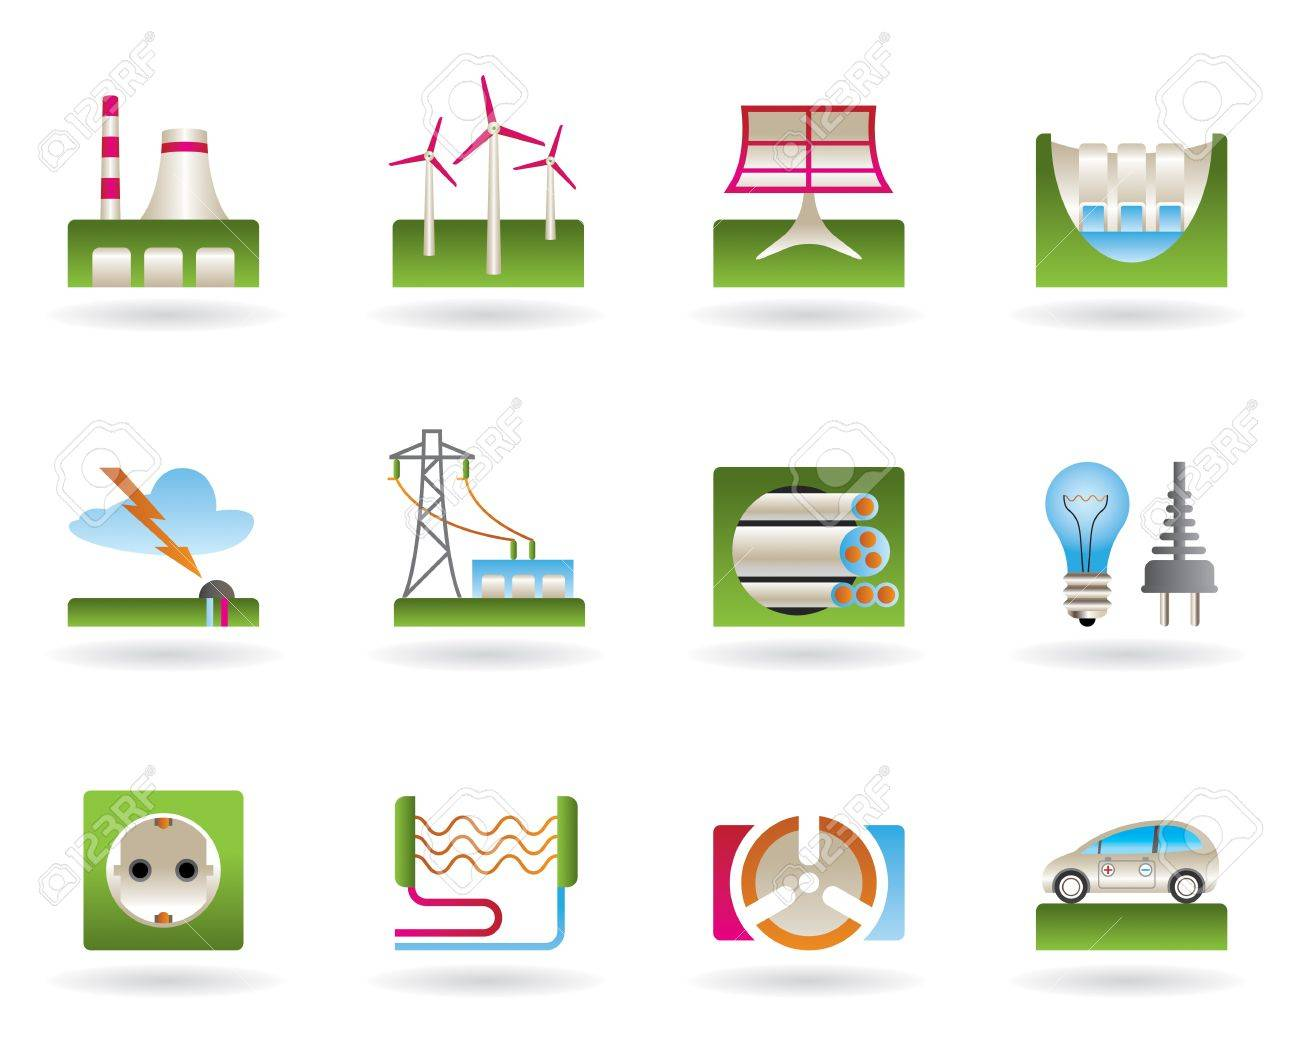 Power plants, electricity grids, electricity consumers Stock Vector - 12481122